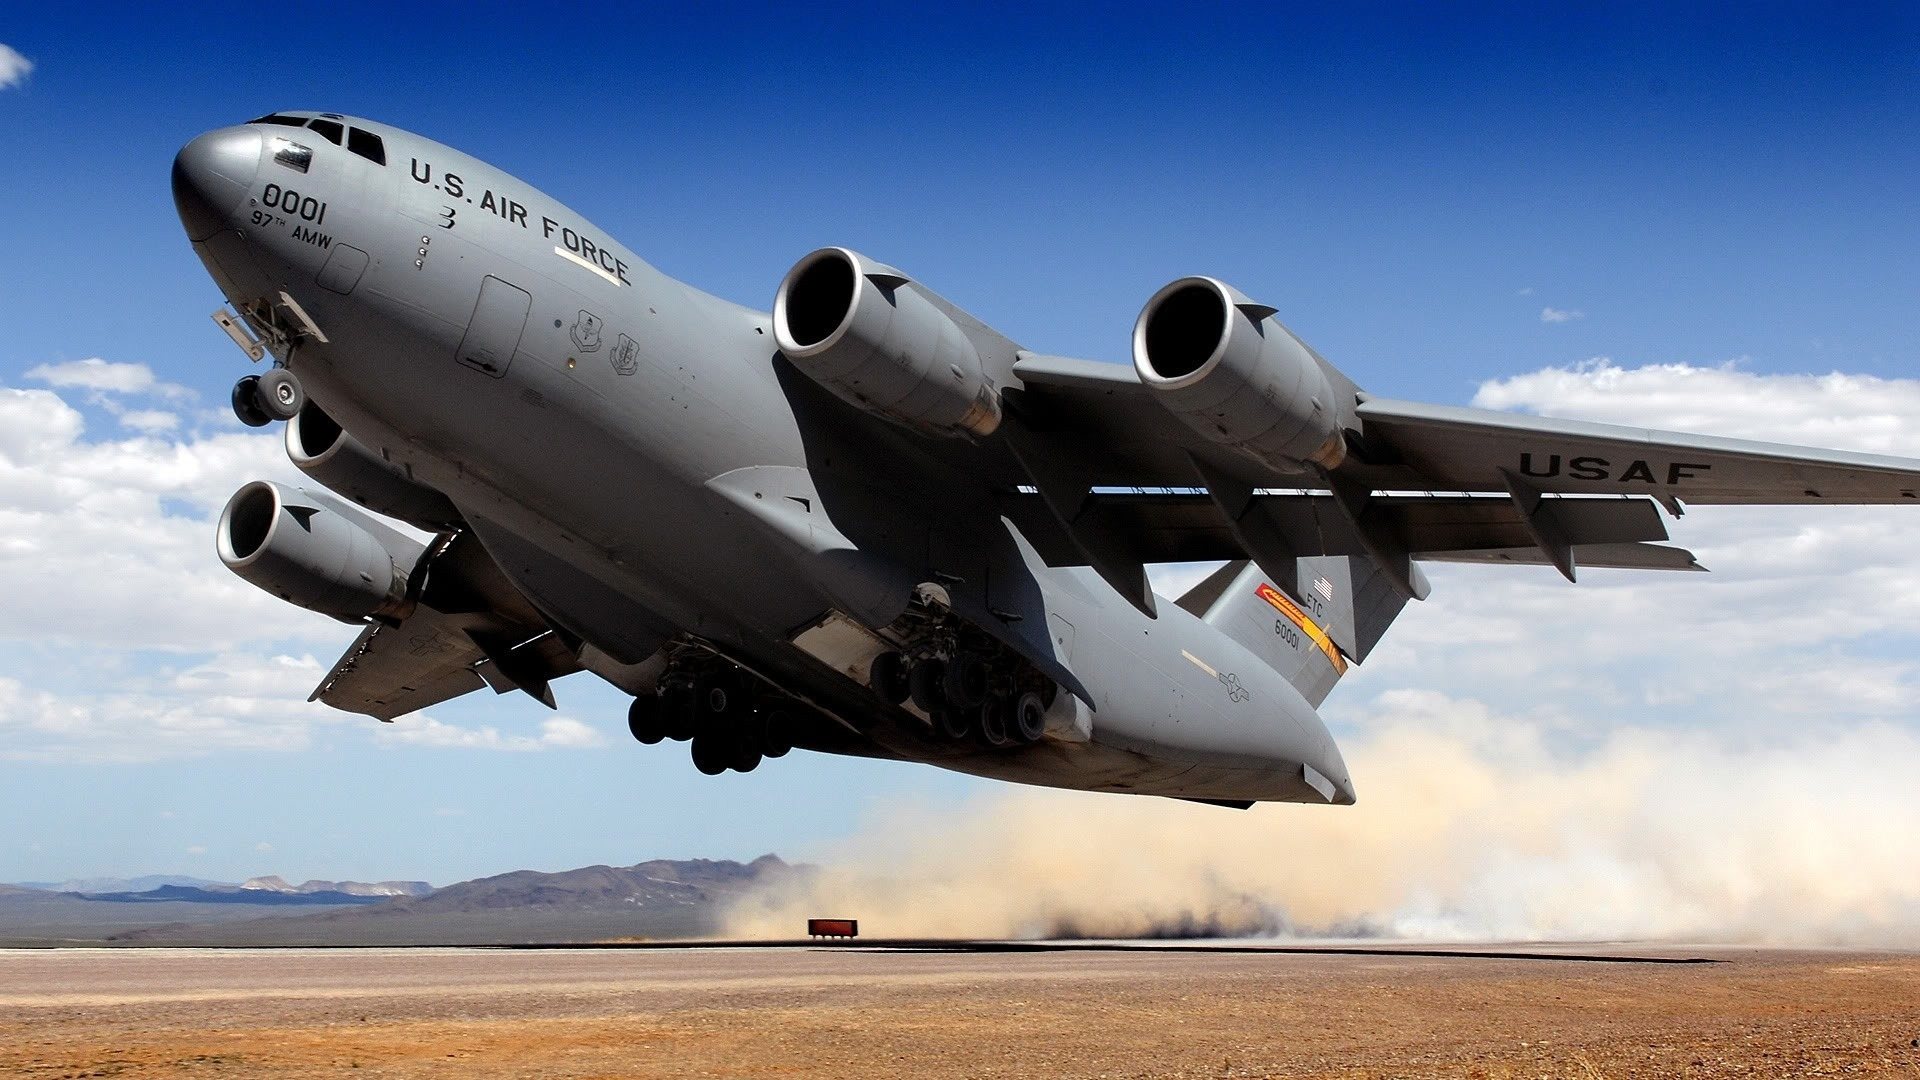 Us Air Force Wallpapers Widescreen